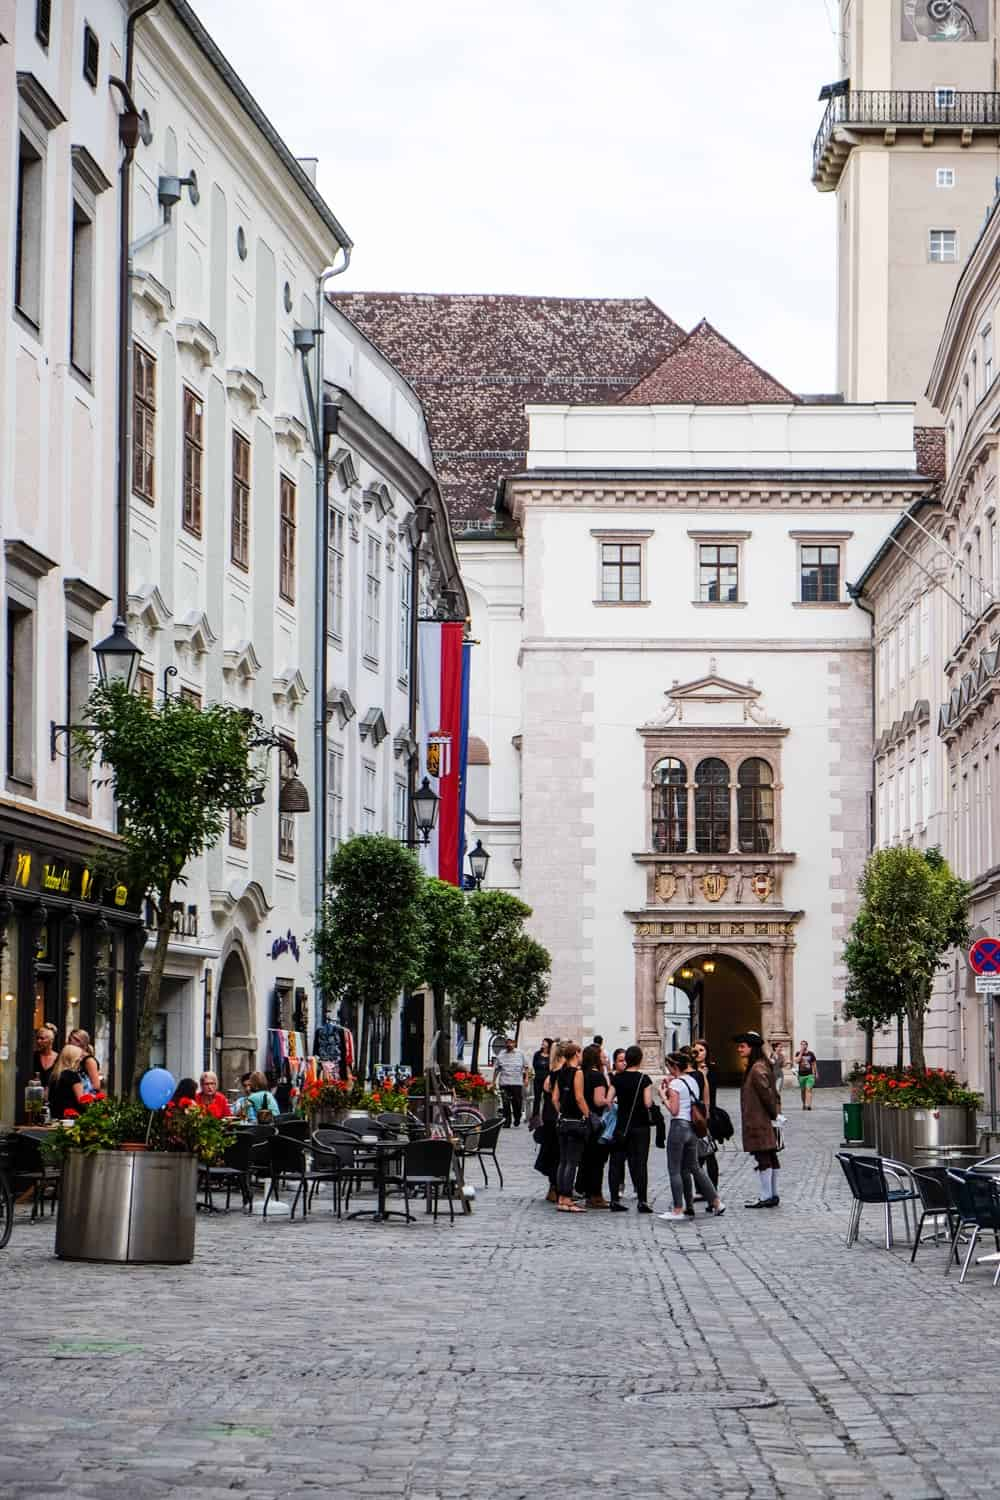 Theatre costume tours in Linz Old Town, Upper Austria